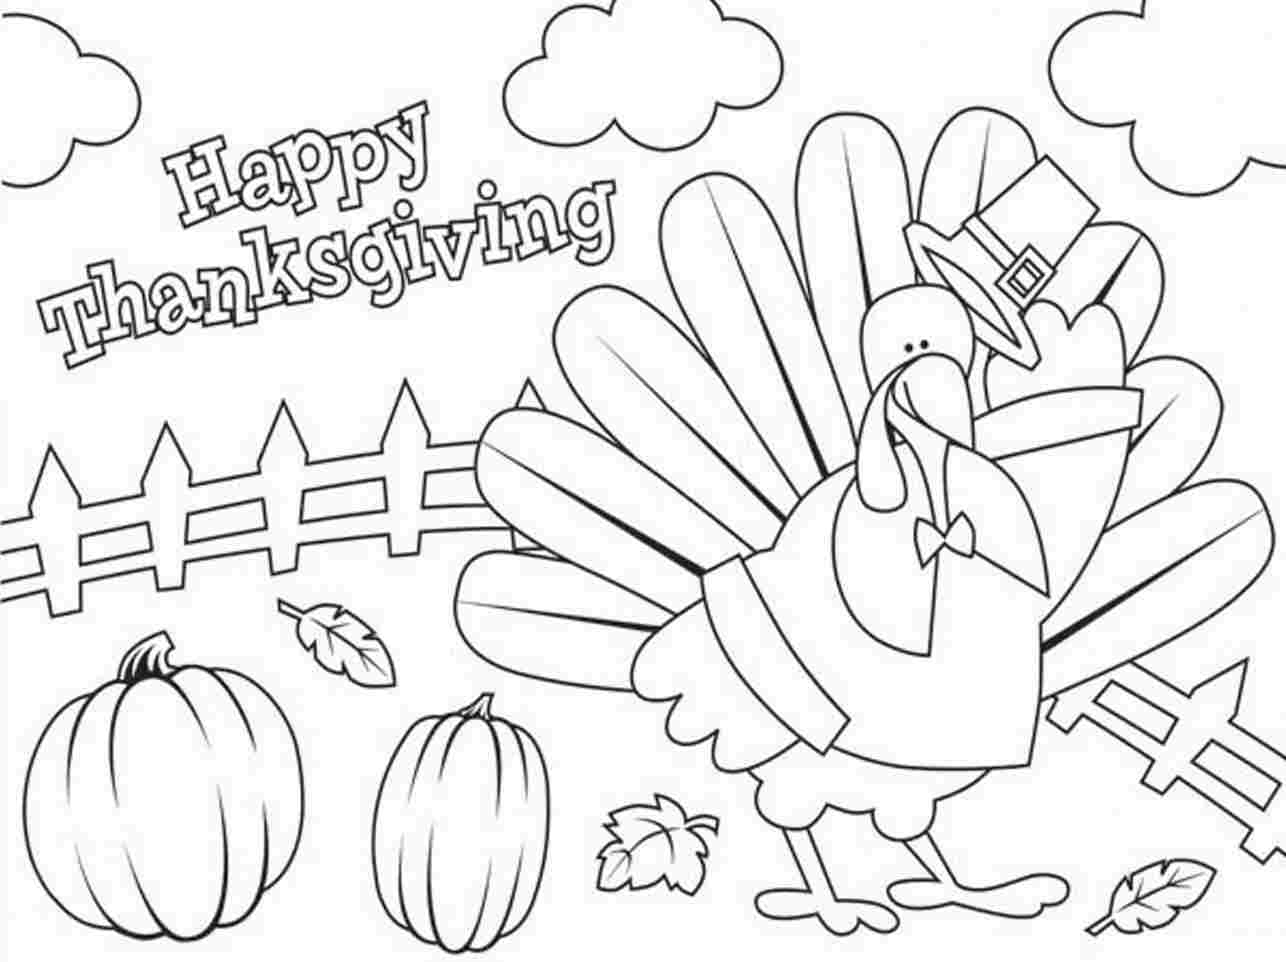 1286x962 Barbie Thanksgiving Coloring Pages Collection Coloring For Kids